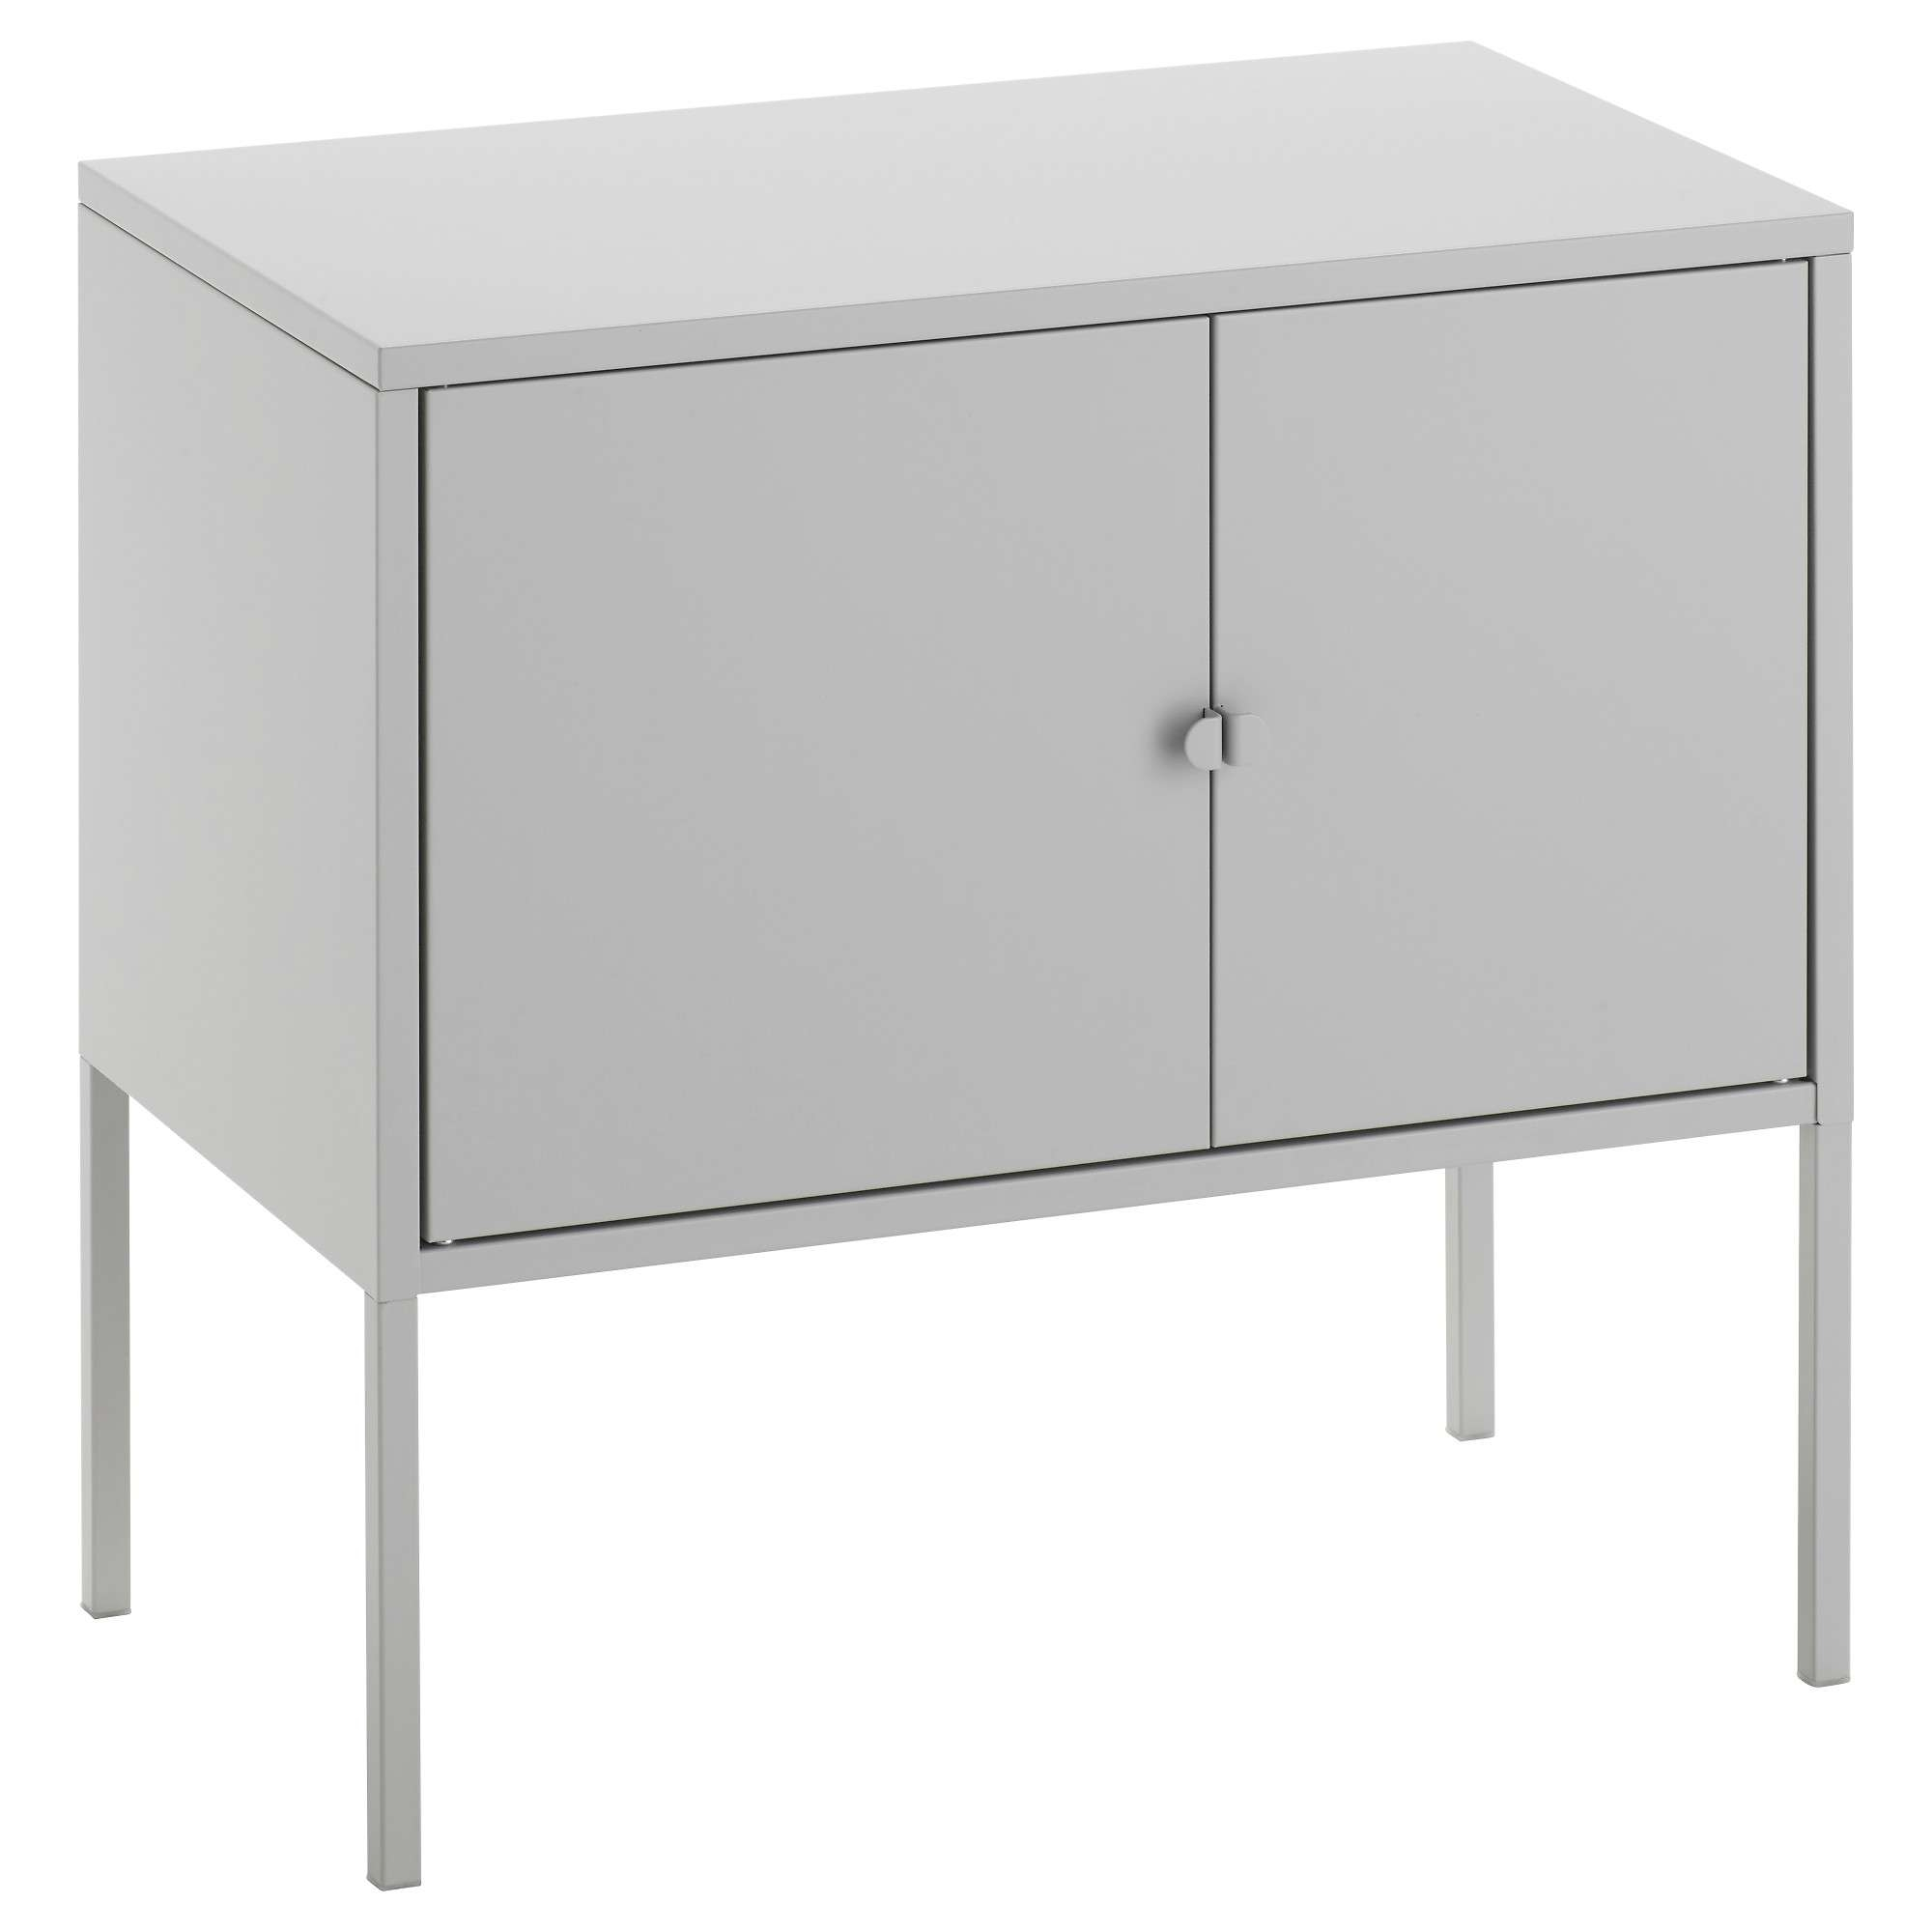 Cabinets & Sideboards – Ikea Within 14 Inch Deep Sideboards (View 8 of 20)